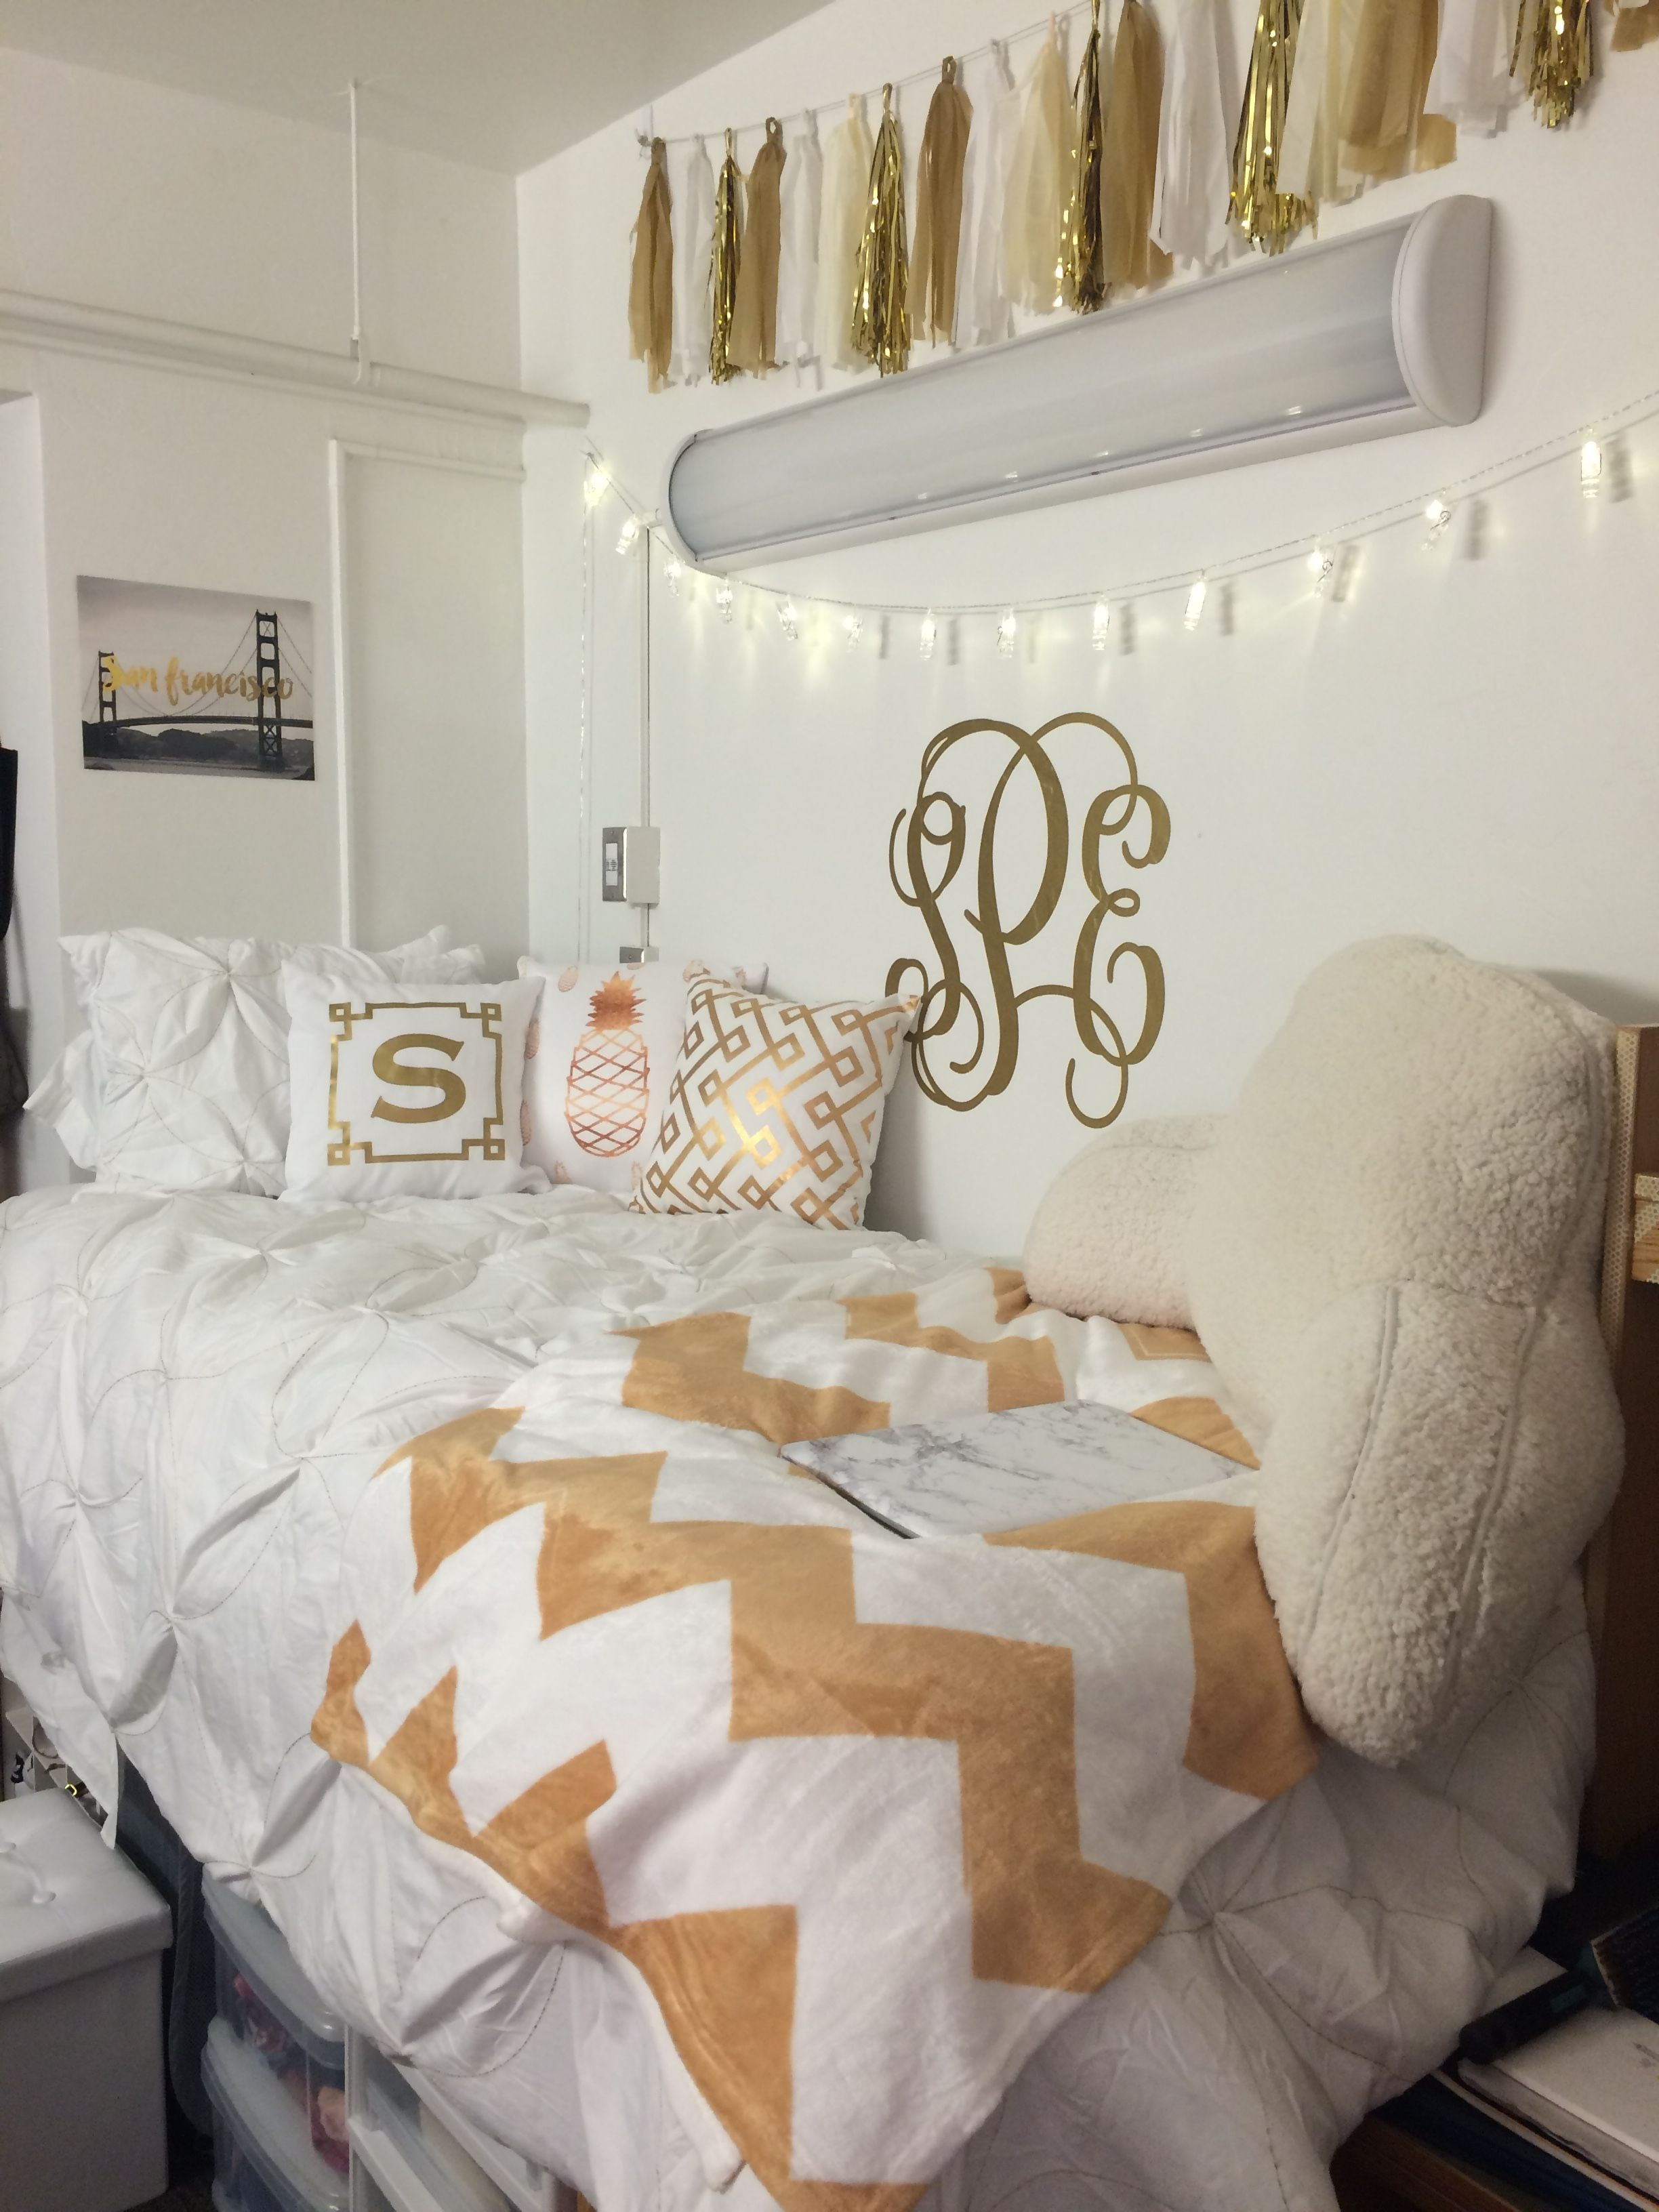 white and gold dorm room university of arizona dorm room preppy dorm room dorm room dorm. Black Bedroom Furniture Sets. Home Design Ideas